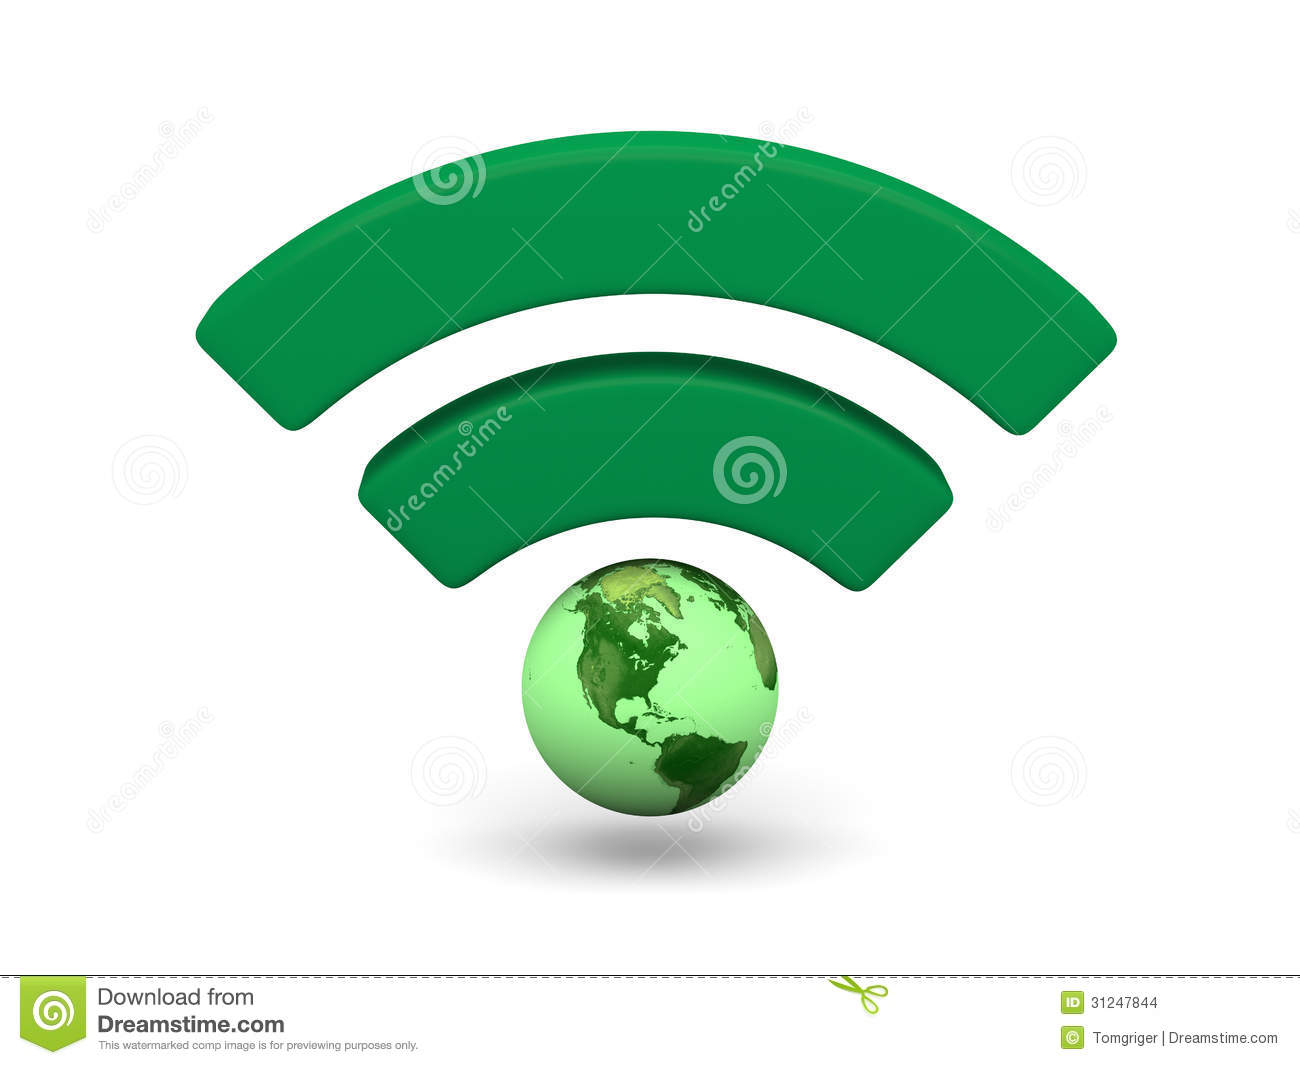 Unlimited Wifi Hotspot >> Green WiFi Symbol Stock Images - Image: 31247844